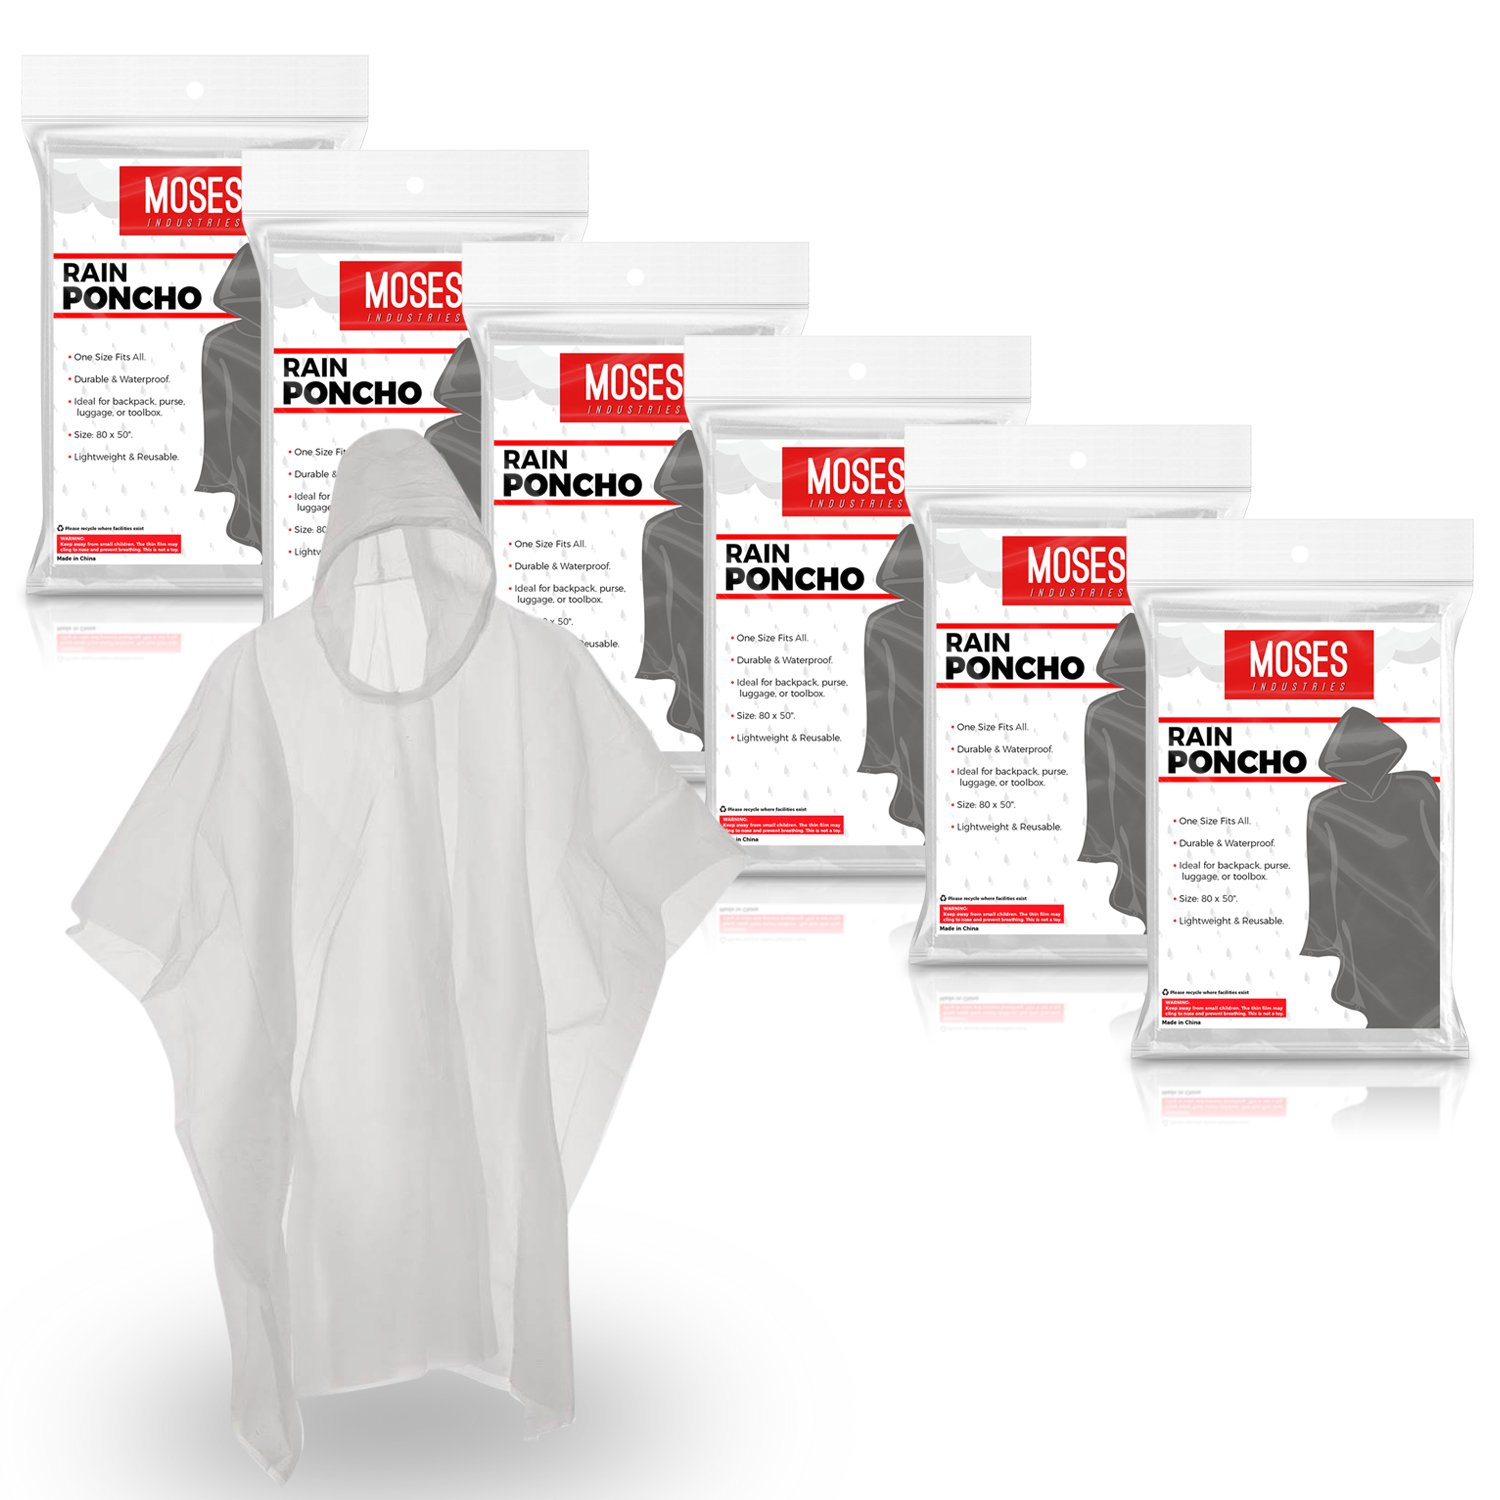 Rain Ponchos for Adults: Lightweight and Waterproof Disposable Emergency Poncho for Travel and Outdoor Activities - Clear (6 Pack) - Fits Men and Women